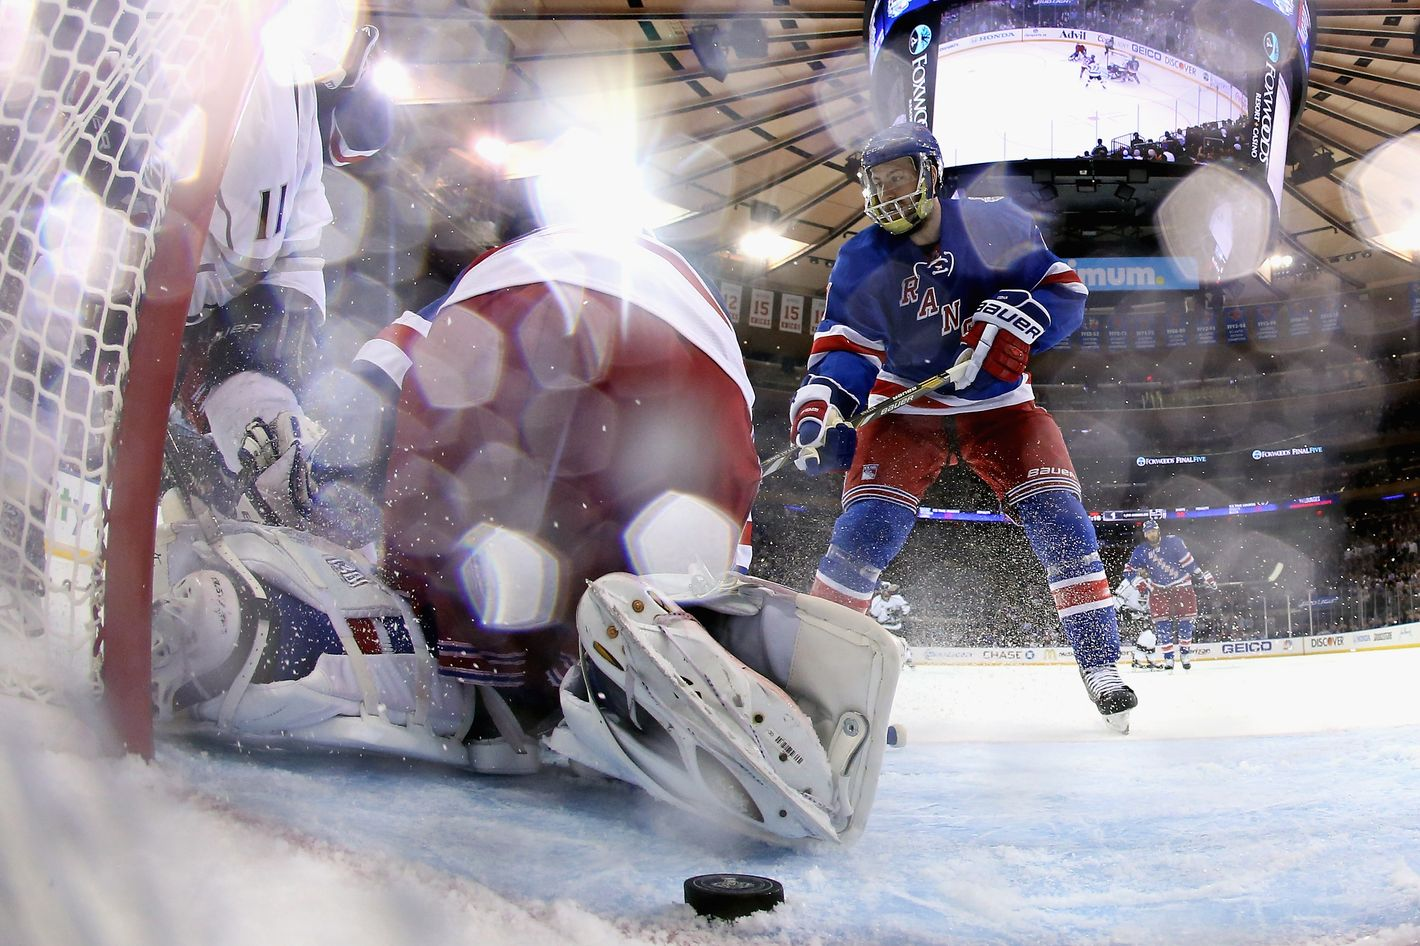 NEW YORK, NY - JUNE 11:  The puck stops just outside the goal behind Henrik Lundqvist #30 of the New York Rangers after a play at the net during the third period of Game Four of the 2014 NHL Stanley Cup Final at Madison Square Garden on June 11, 2014 in New York, New York.  (Photo by Bruce Bennett/Getty Images)